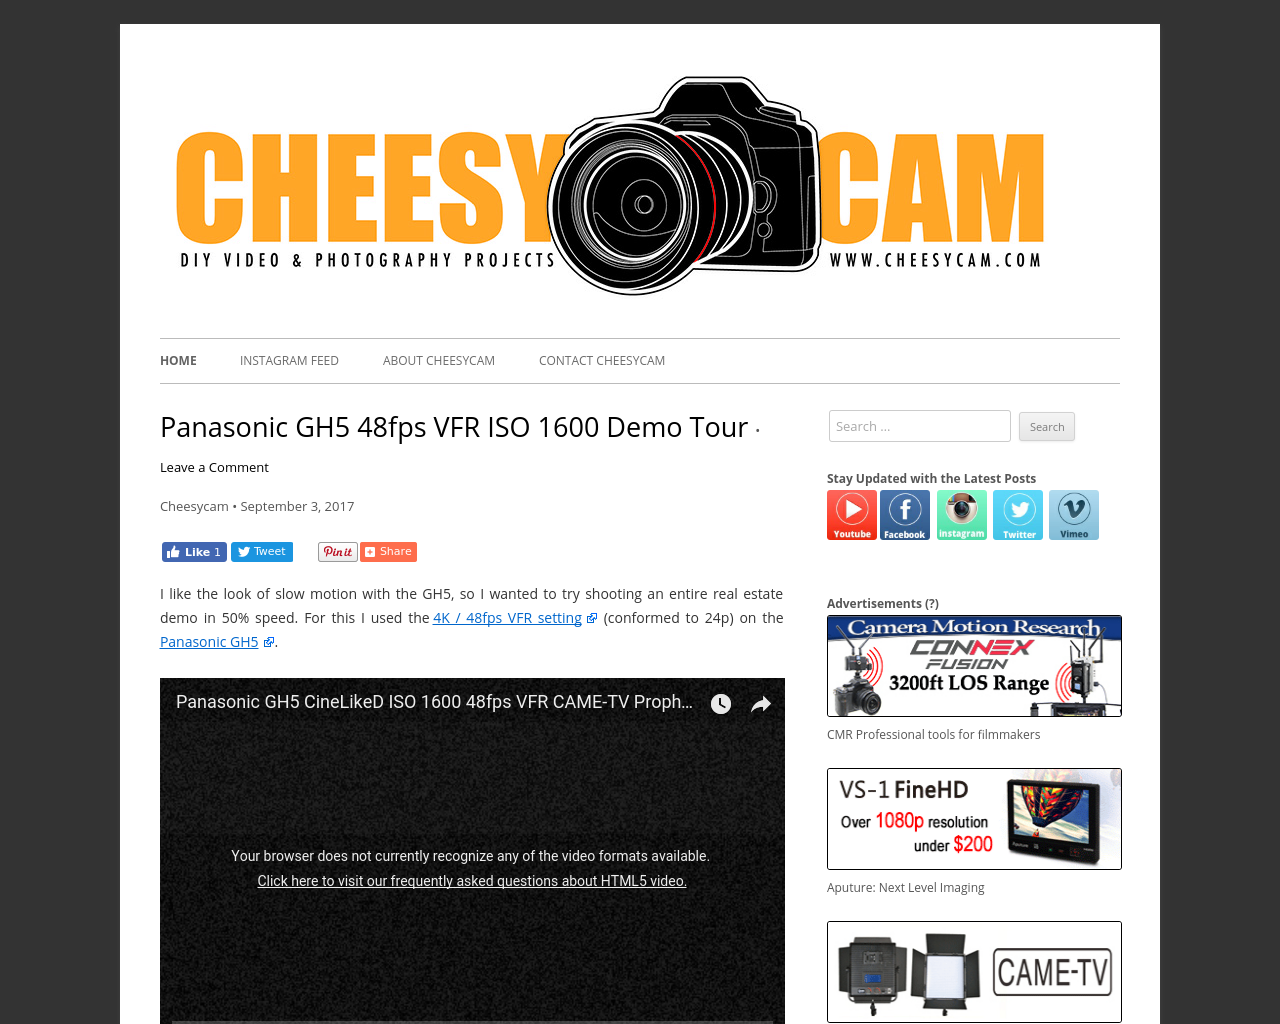 CheesyCam-Advertising-Reviews-Pricing